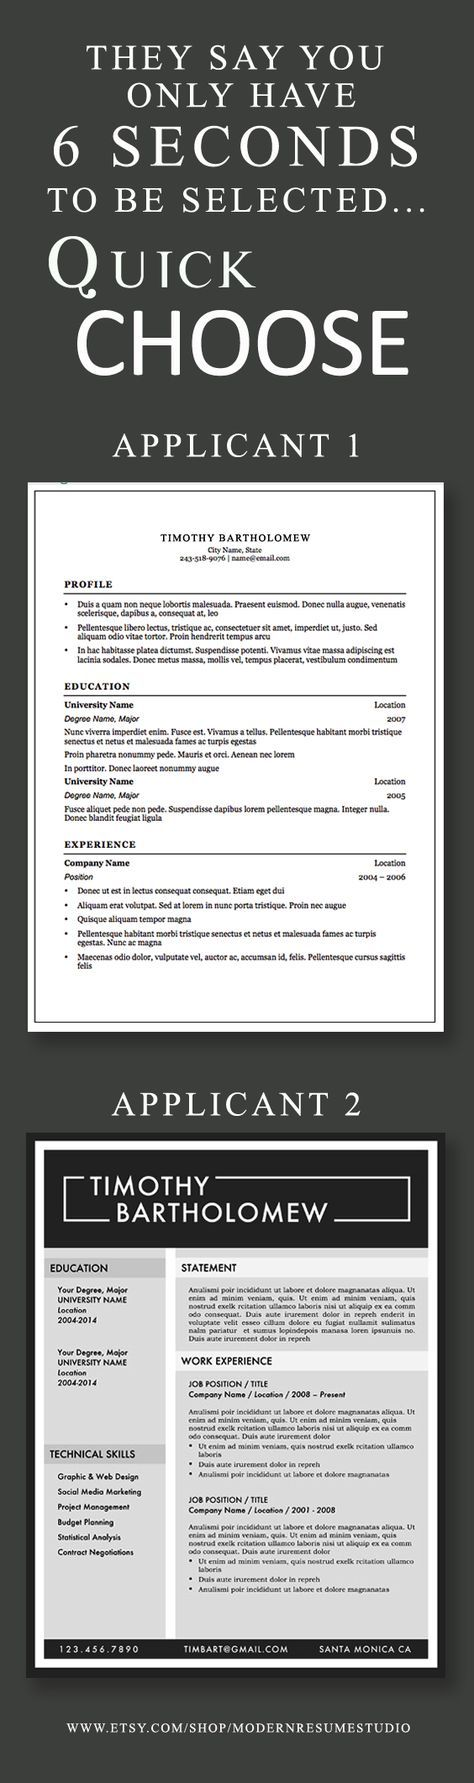 Resume For Administrative Assistant%0A Research tells us that recruiters review resumes in   seconds  Make them  count with a